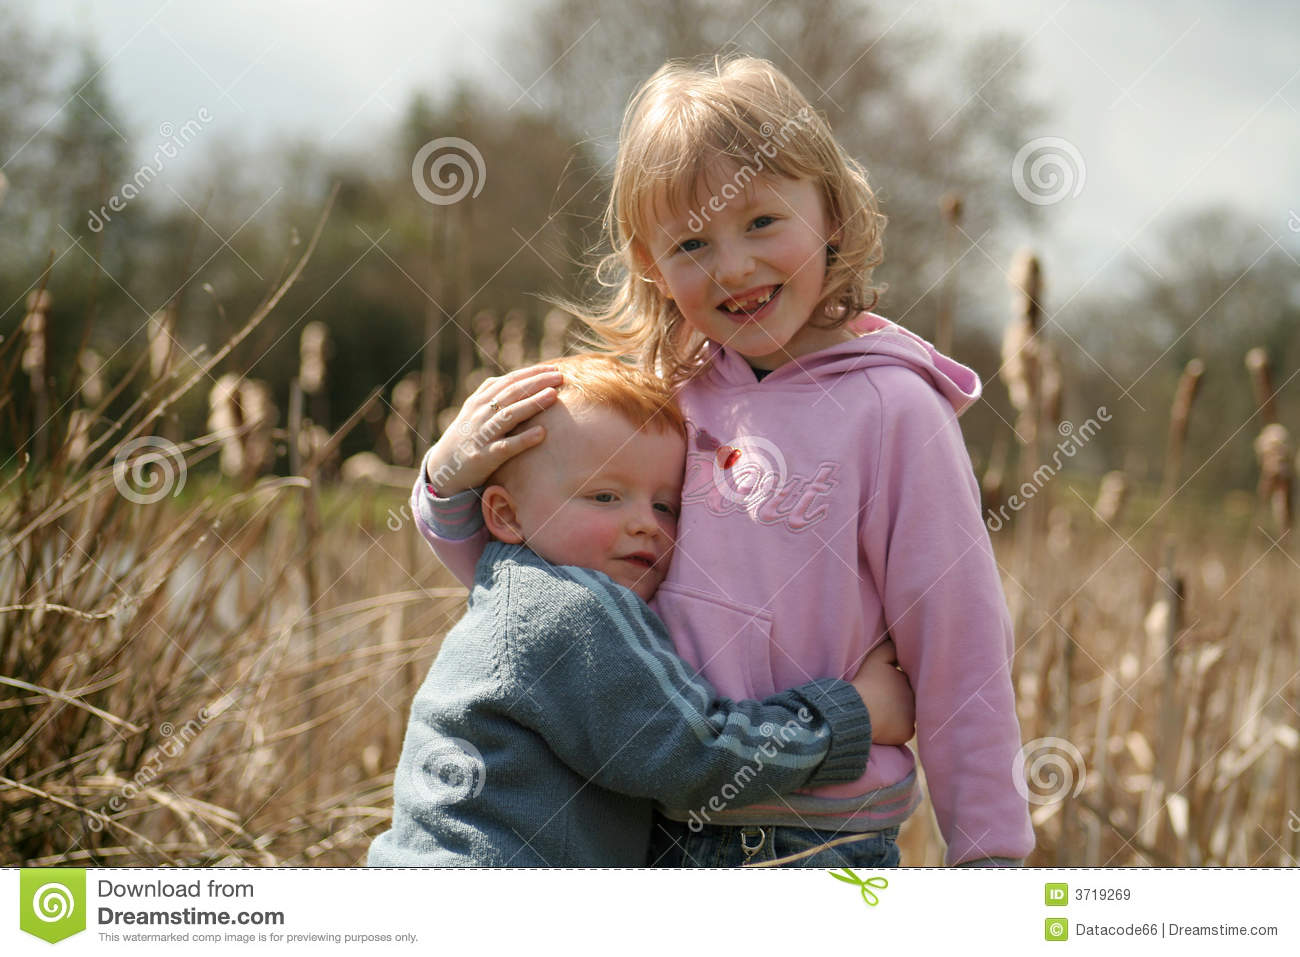 the hug royalty free stock images   image 3719269